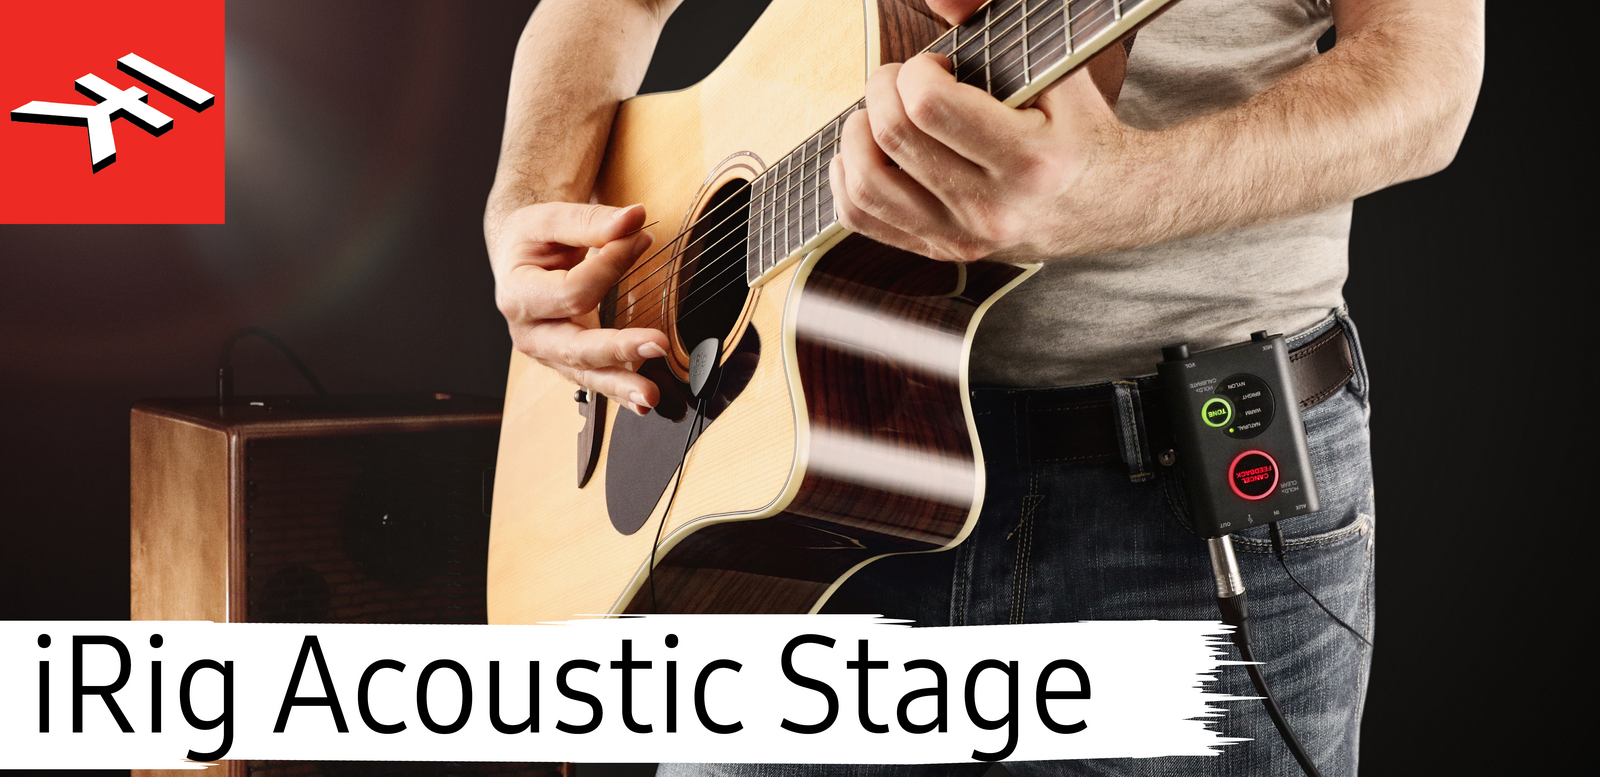 IK Multimedia iRig - Acoustic Stage